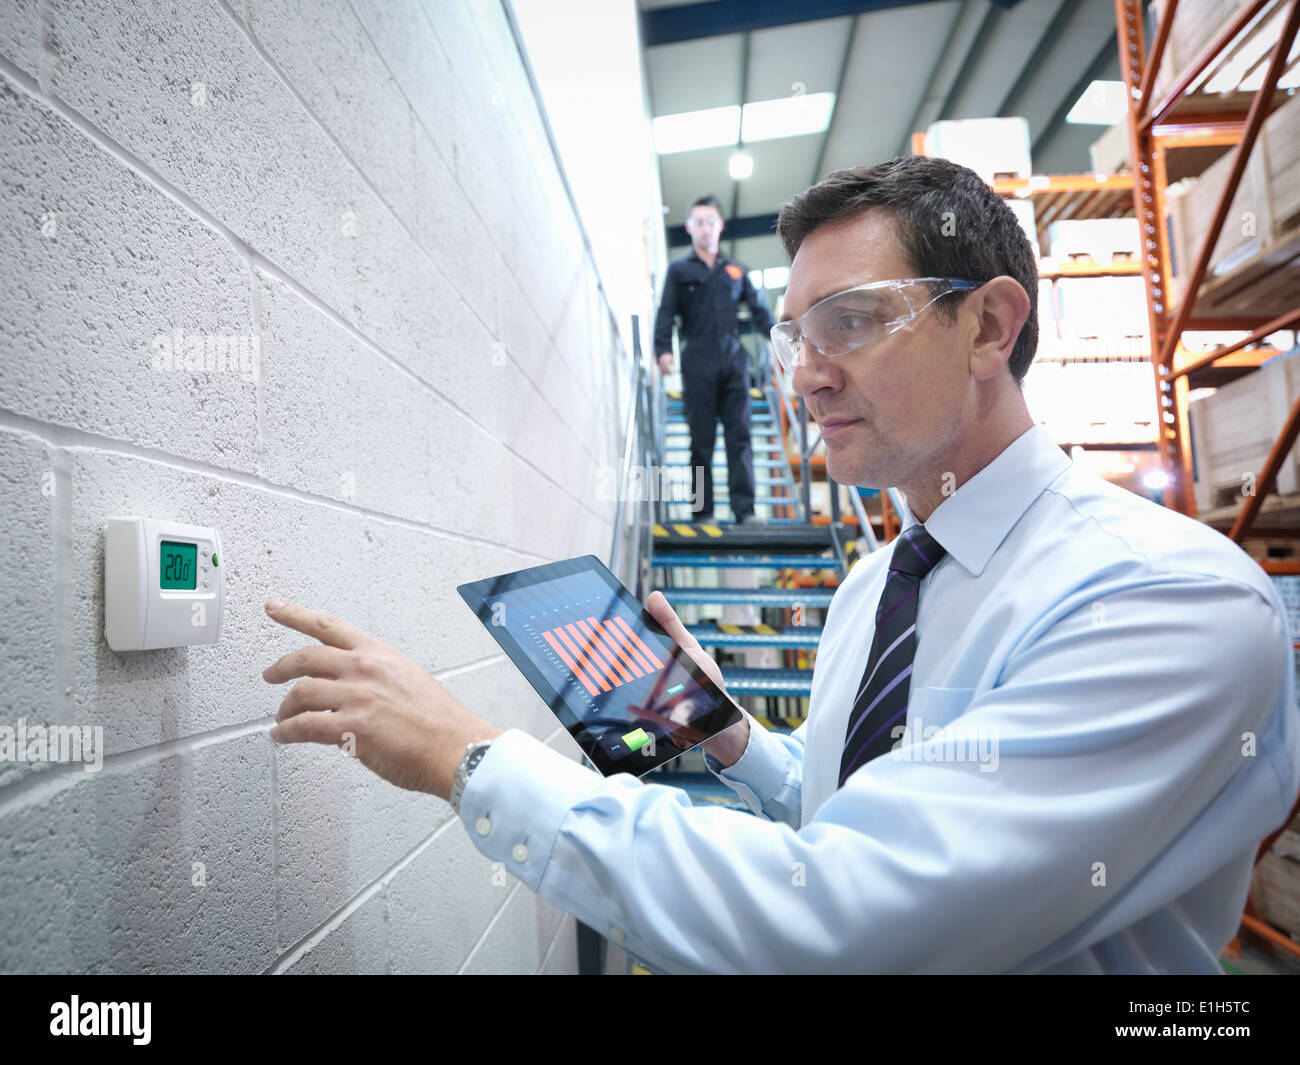 Office worker checking thermostat in factory - Stock Image